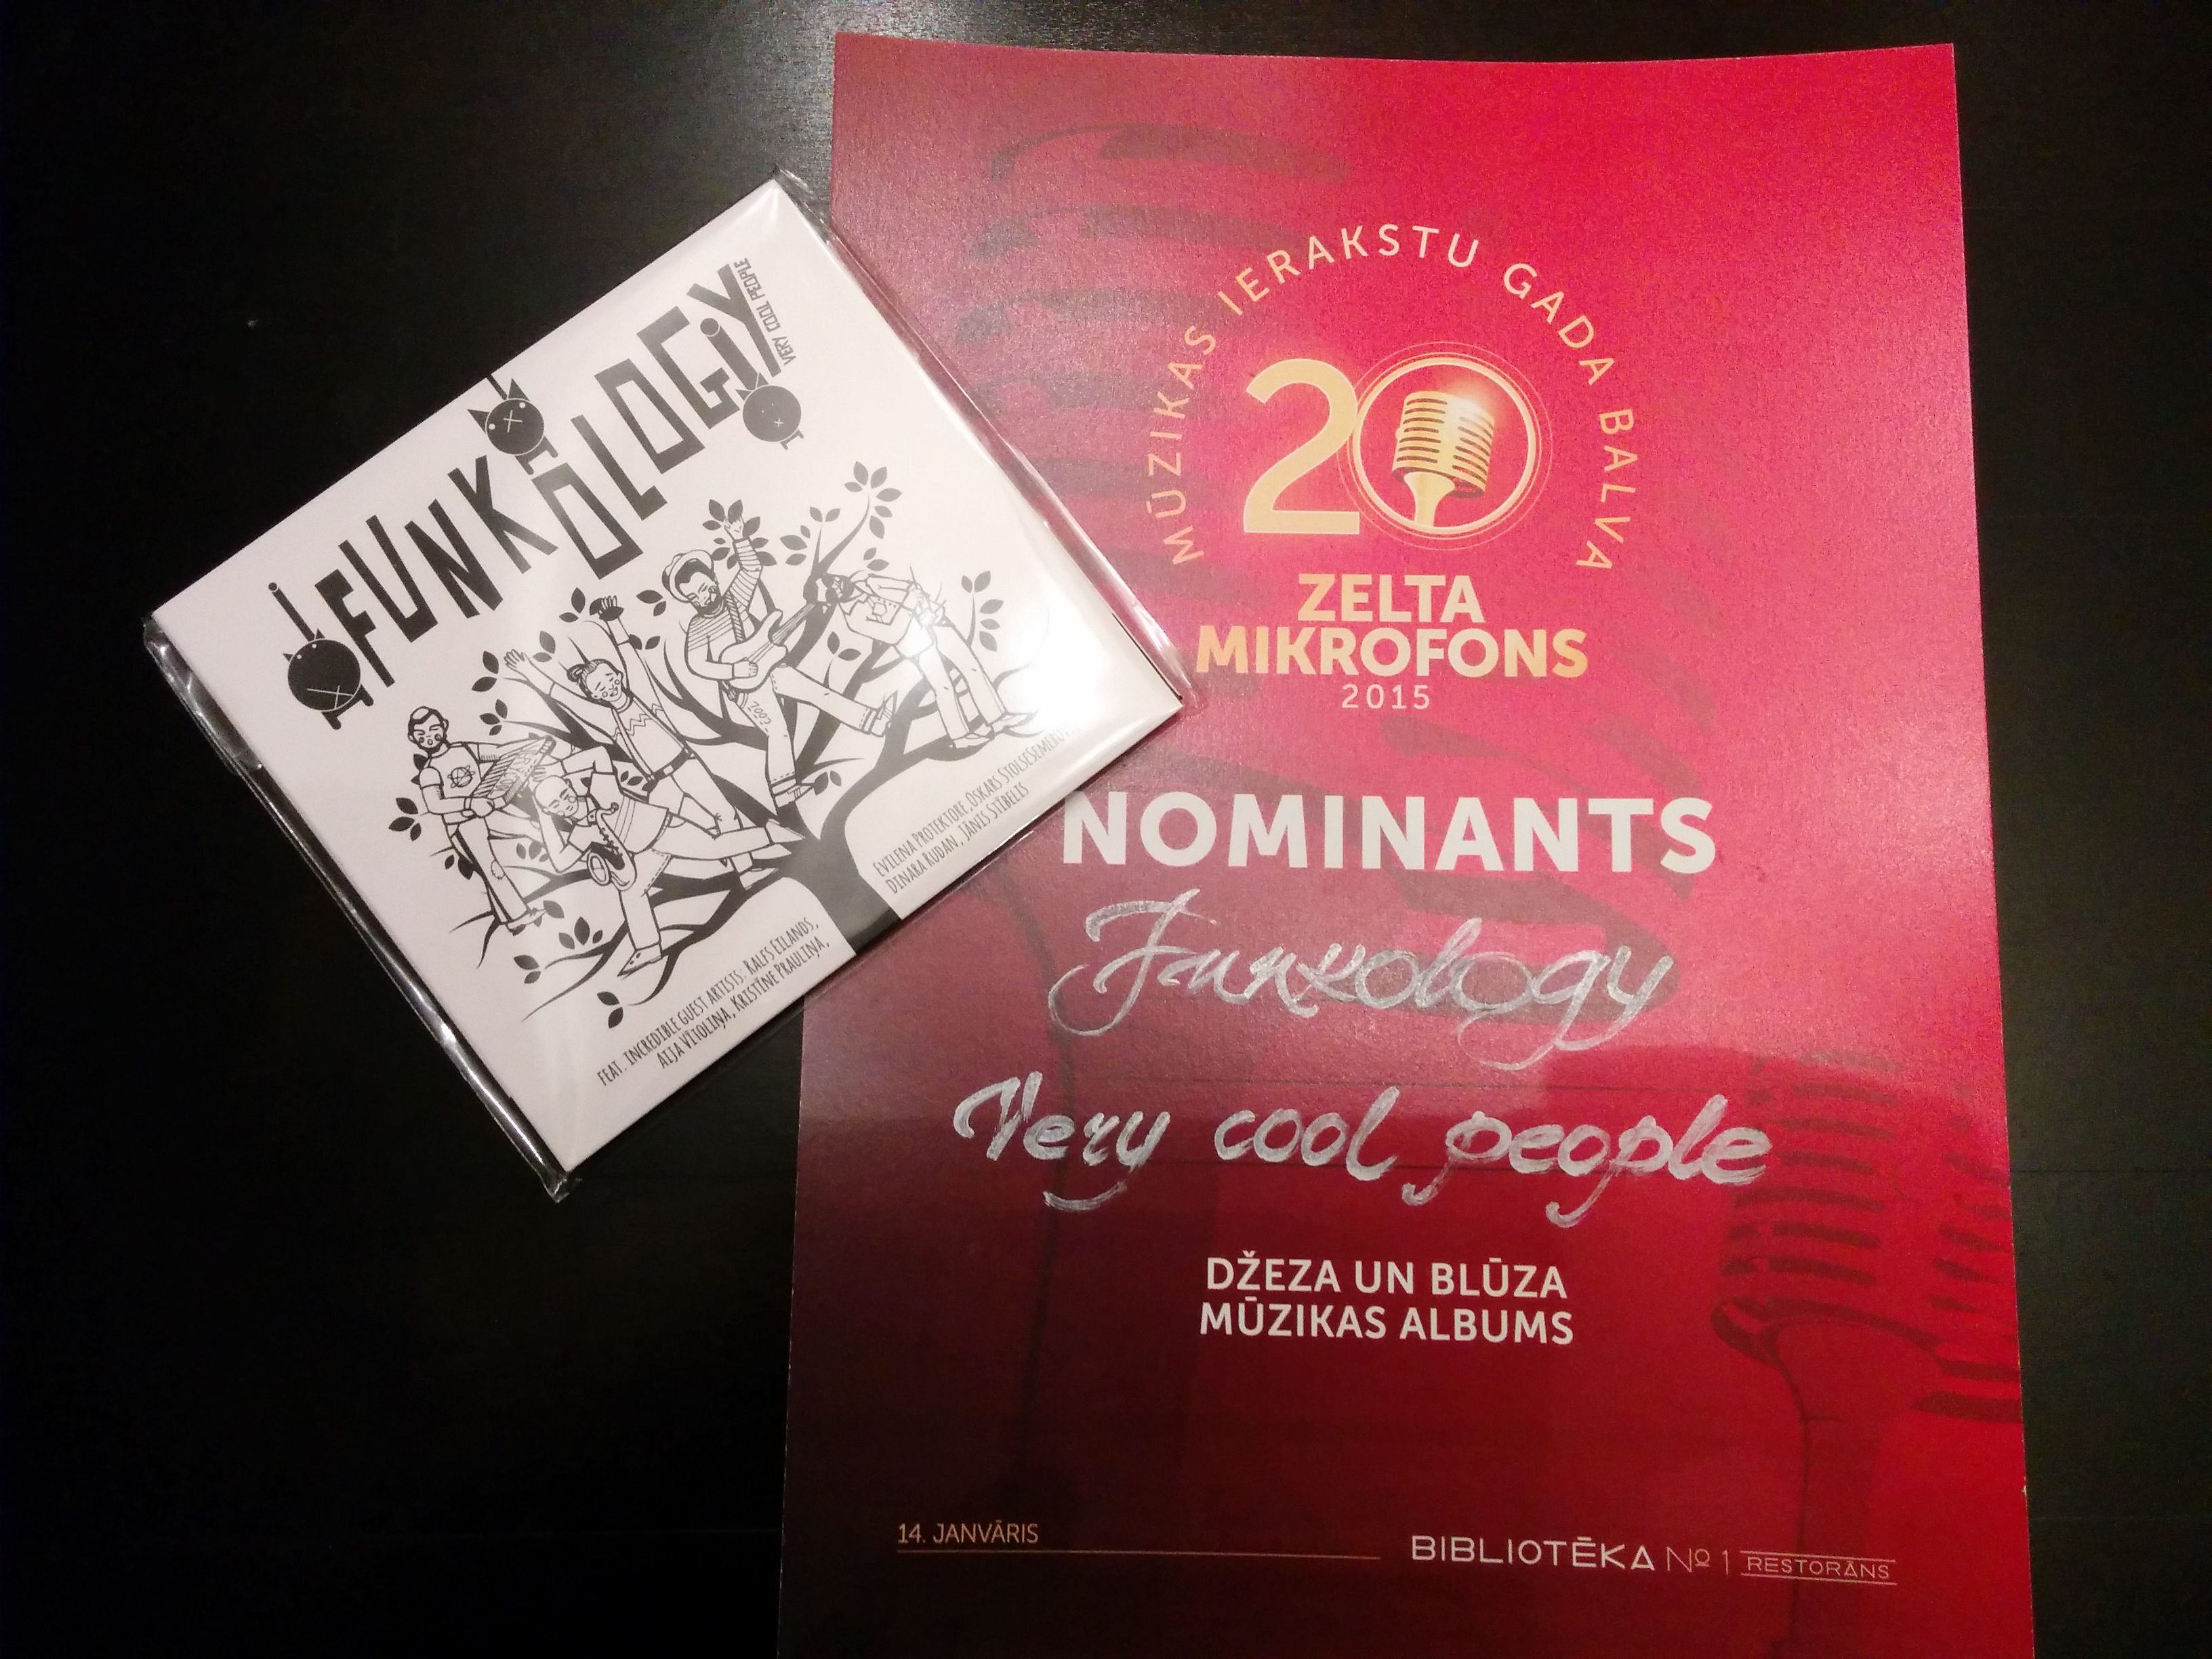 Funkology is nominated in Latvian Music Awards